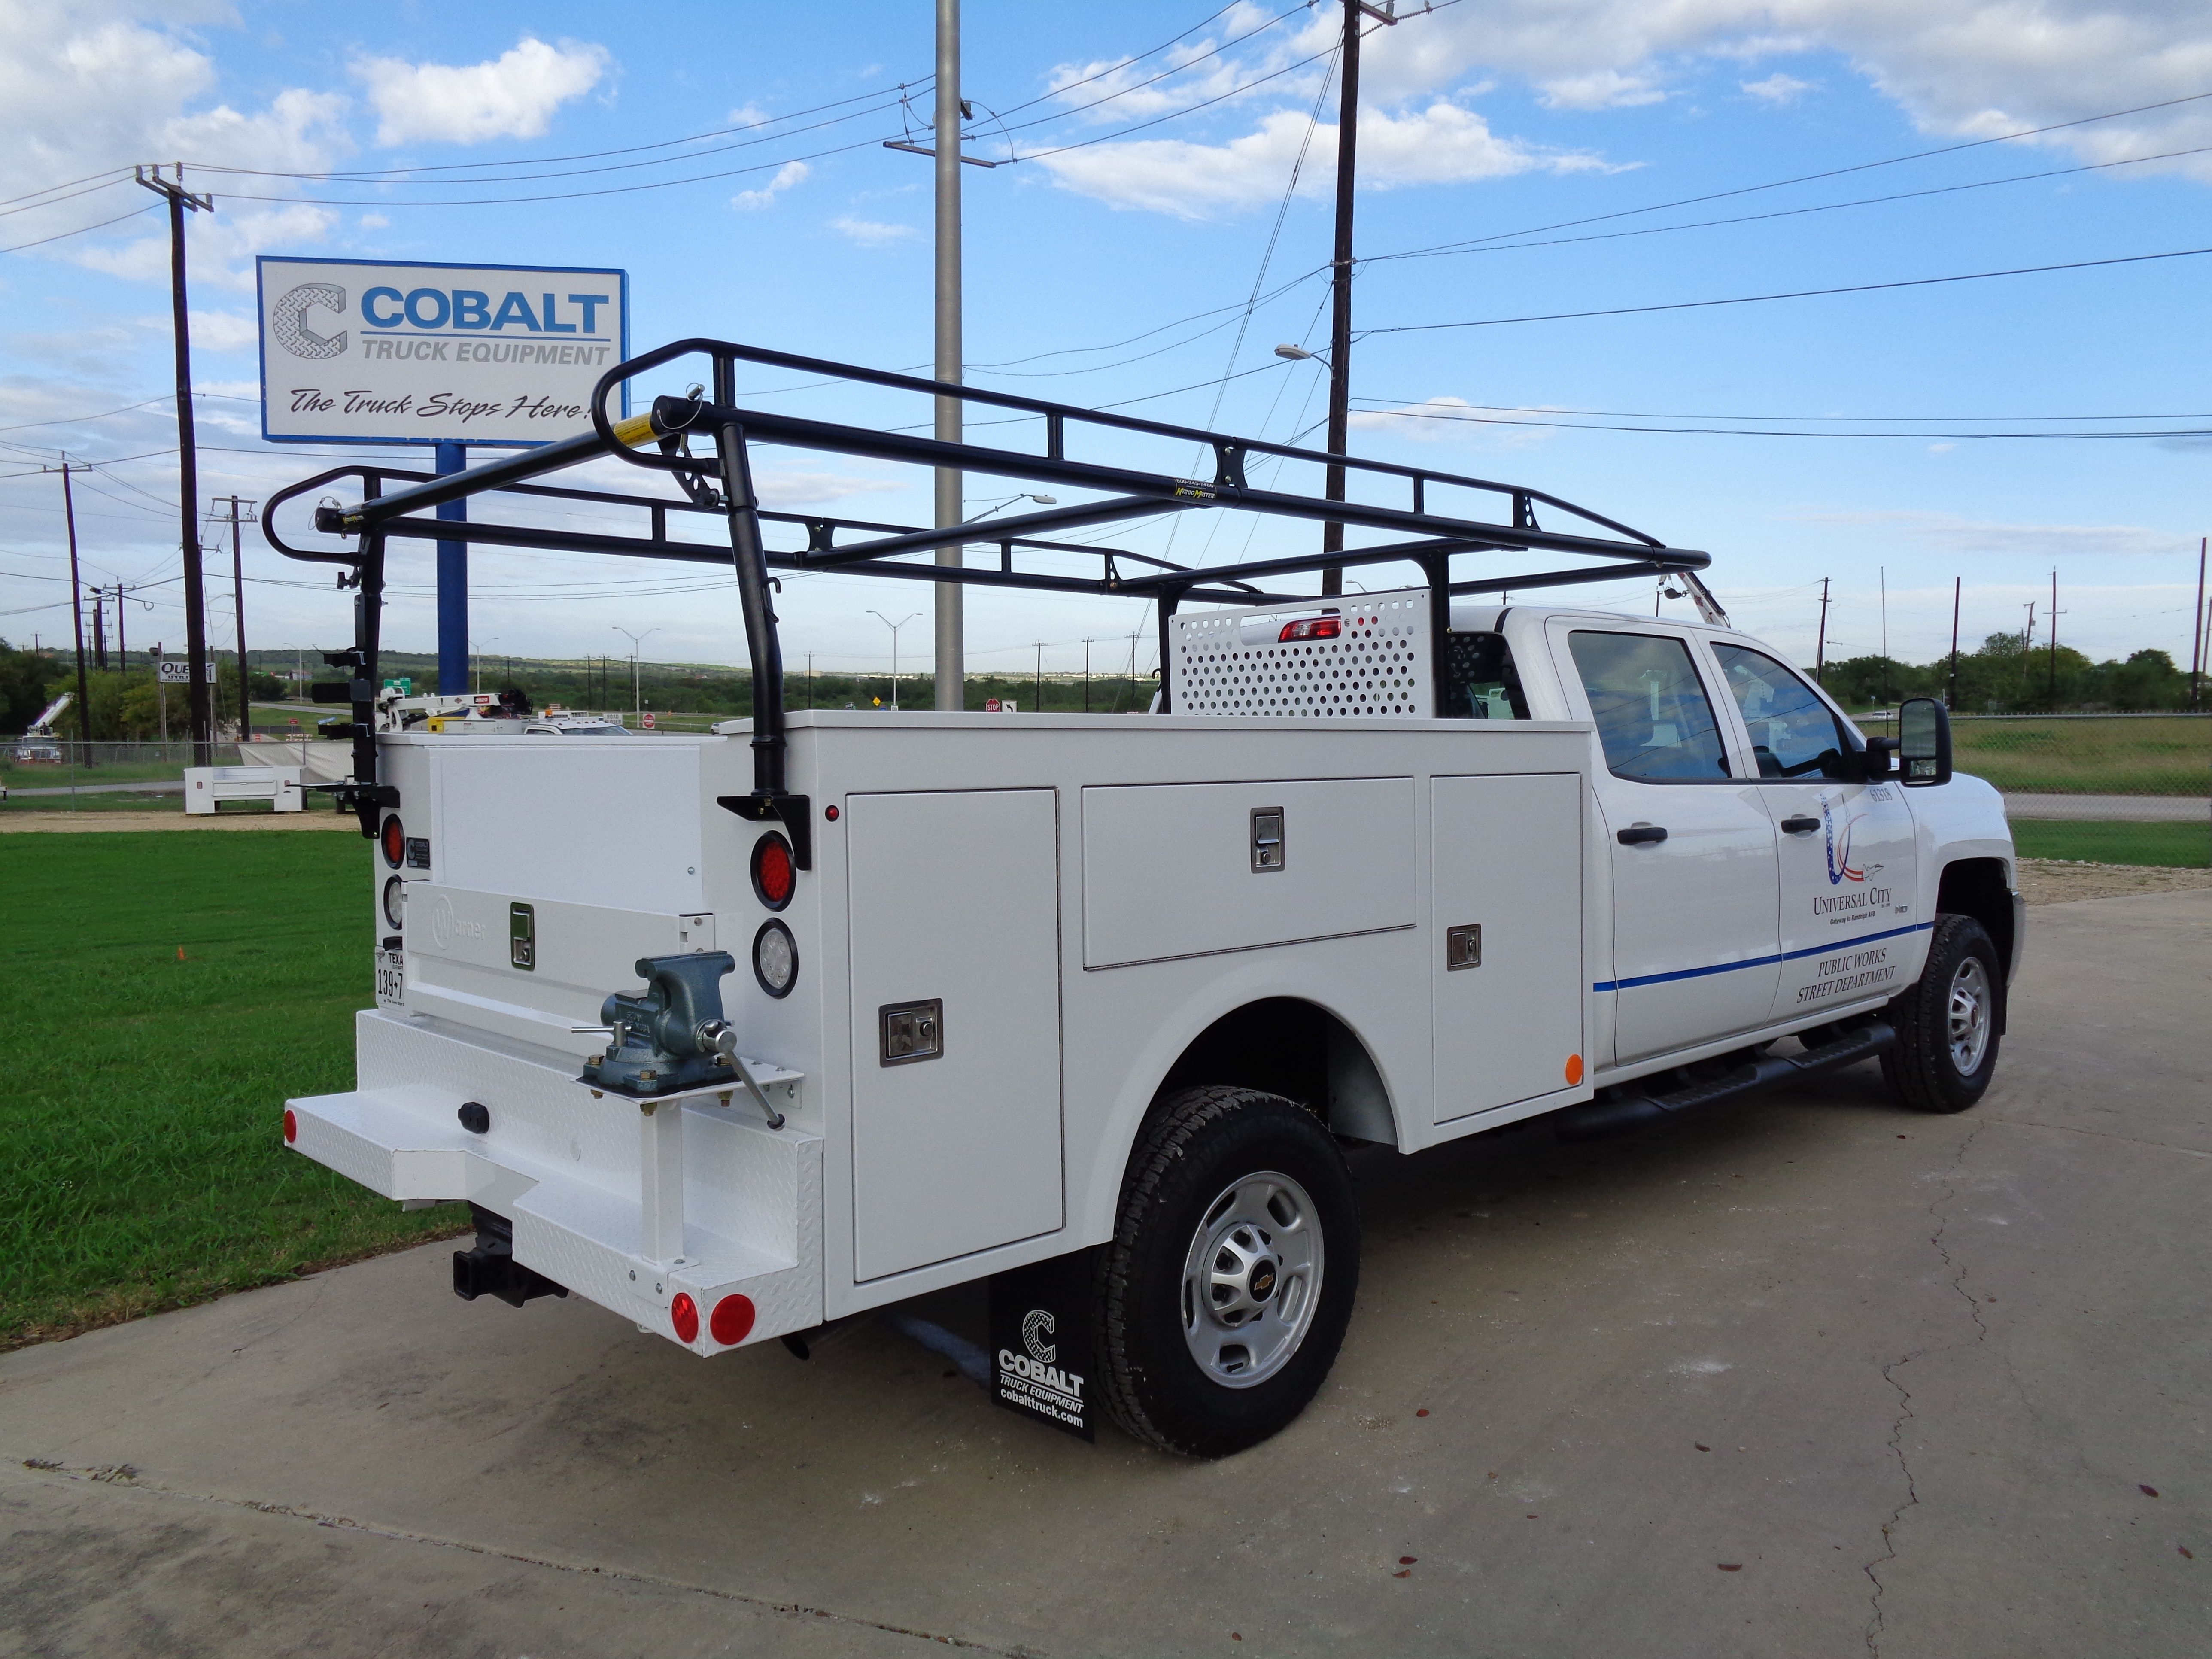 738d011b875f Heavy duty Emberton drawer units and a Kargo Master ladder rack make this  service body ready to get to some serious work  What types of jobs would  you use ...